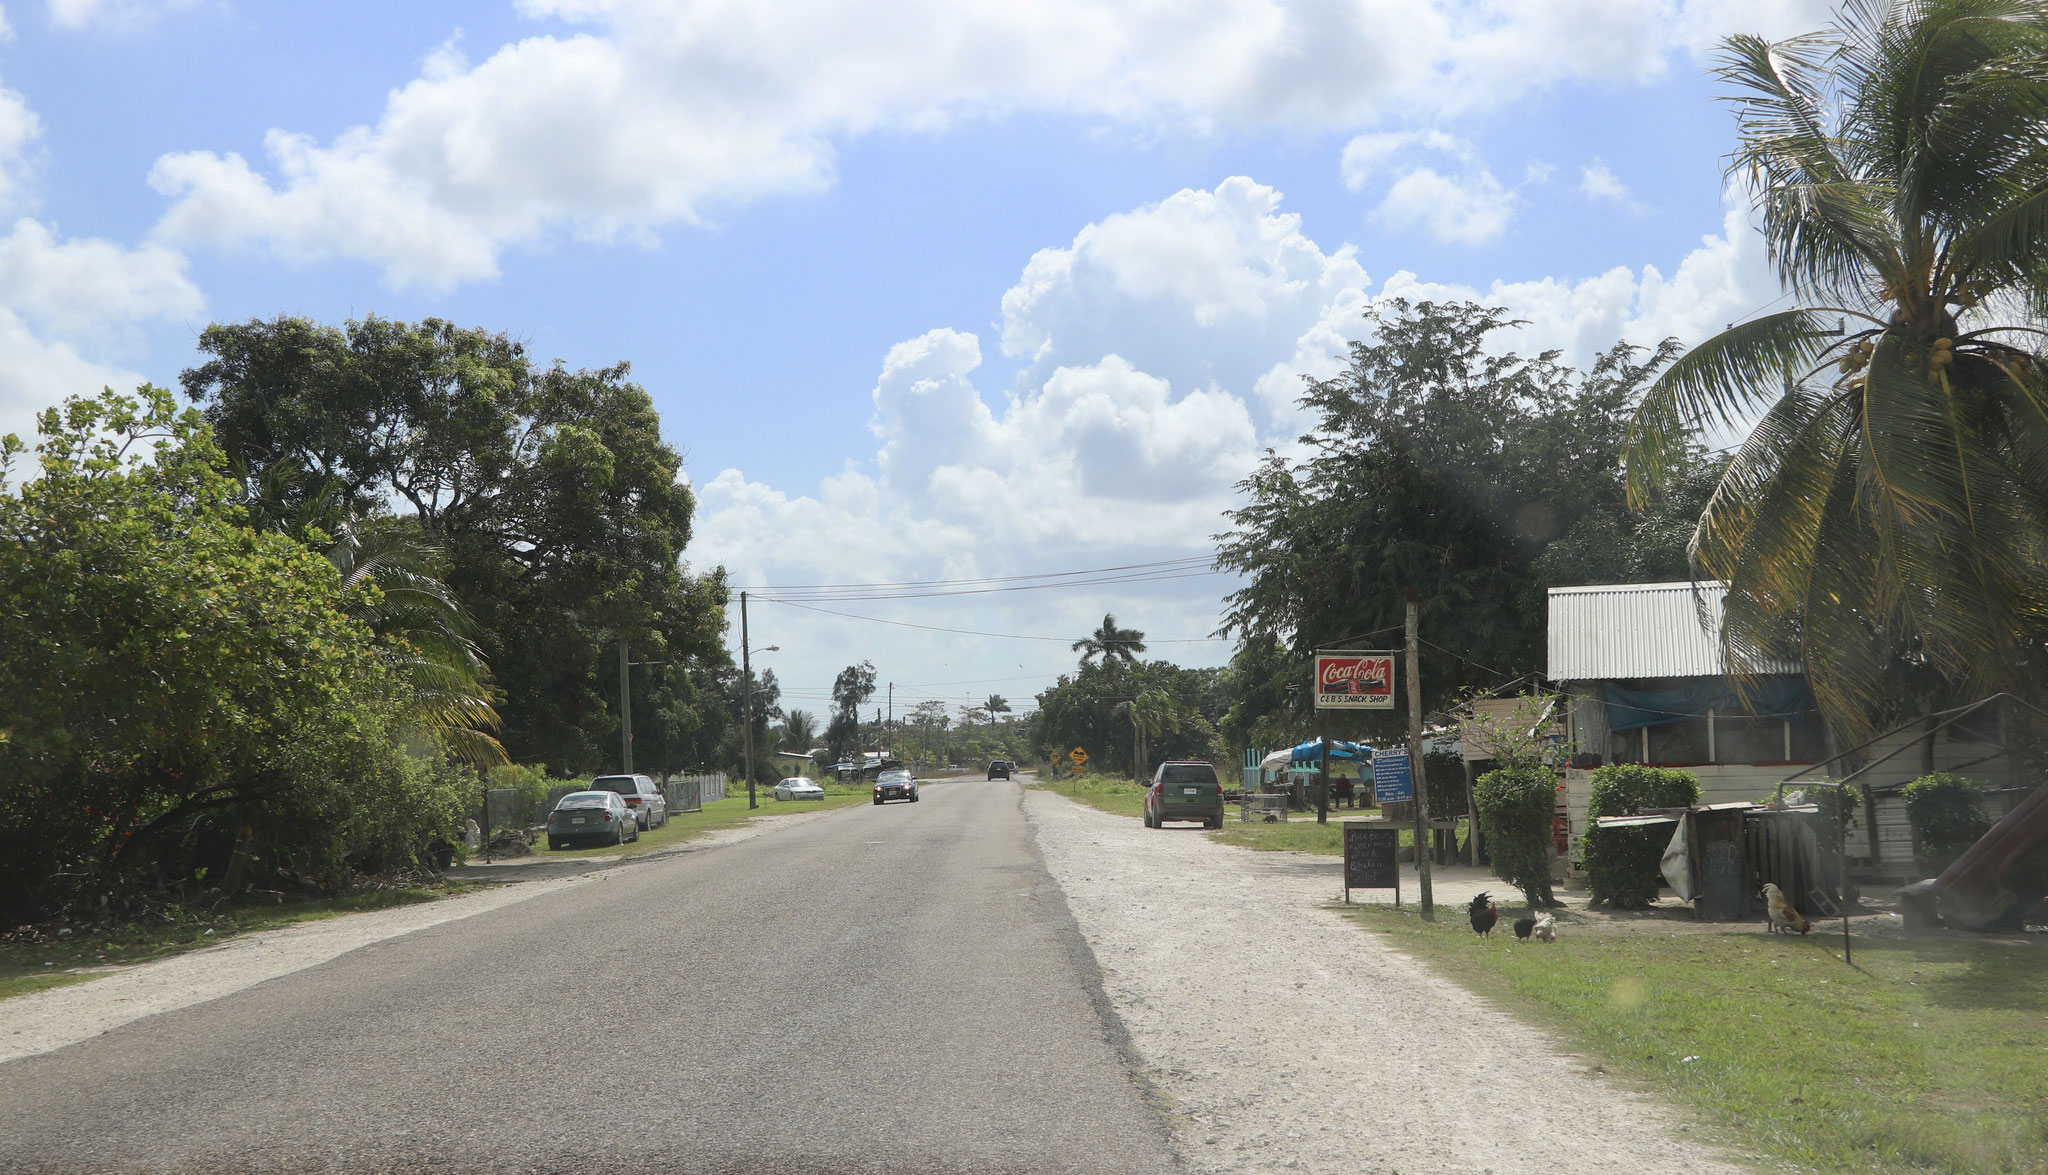 The roads in Belize were fairly good...